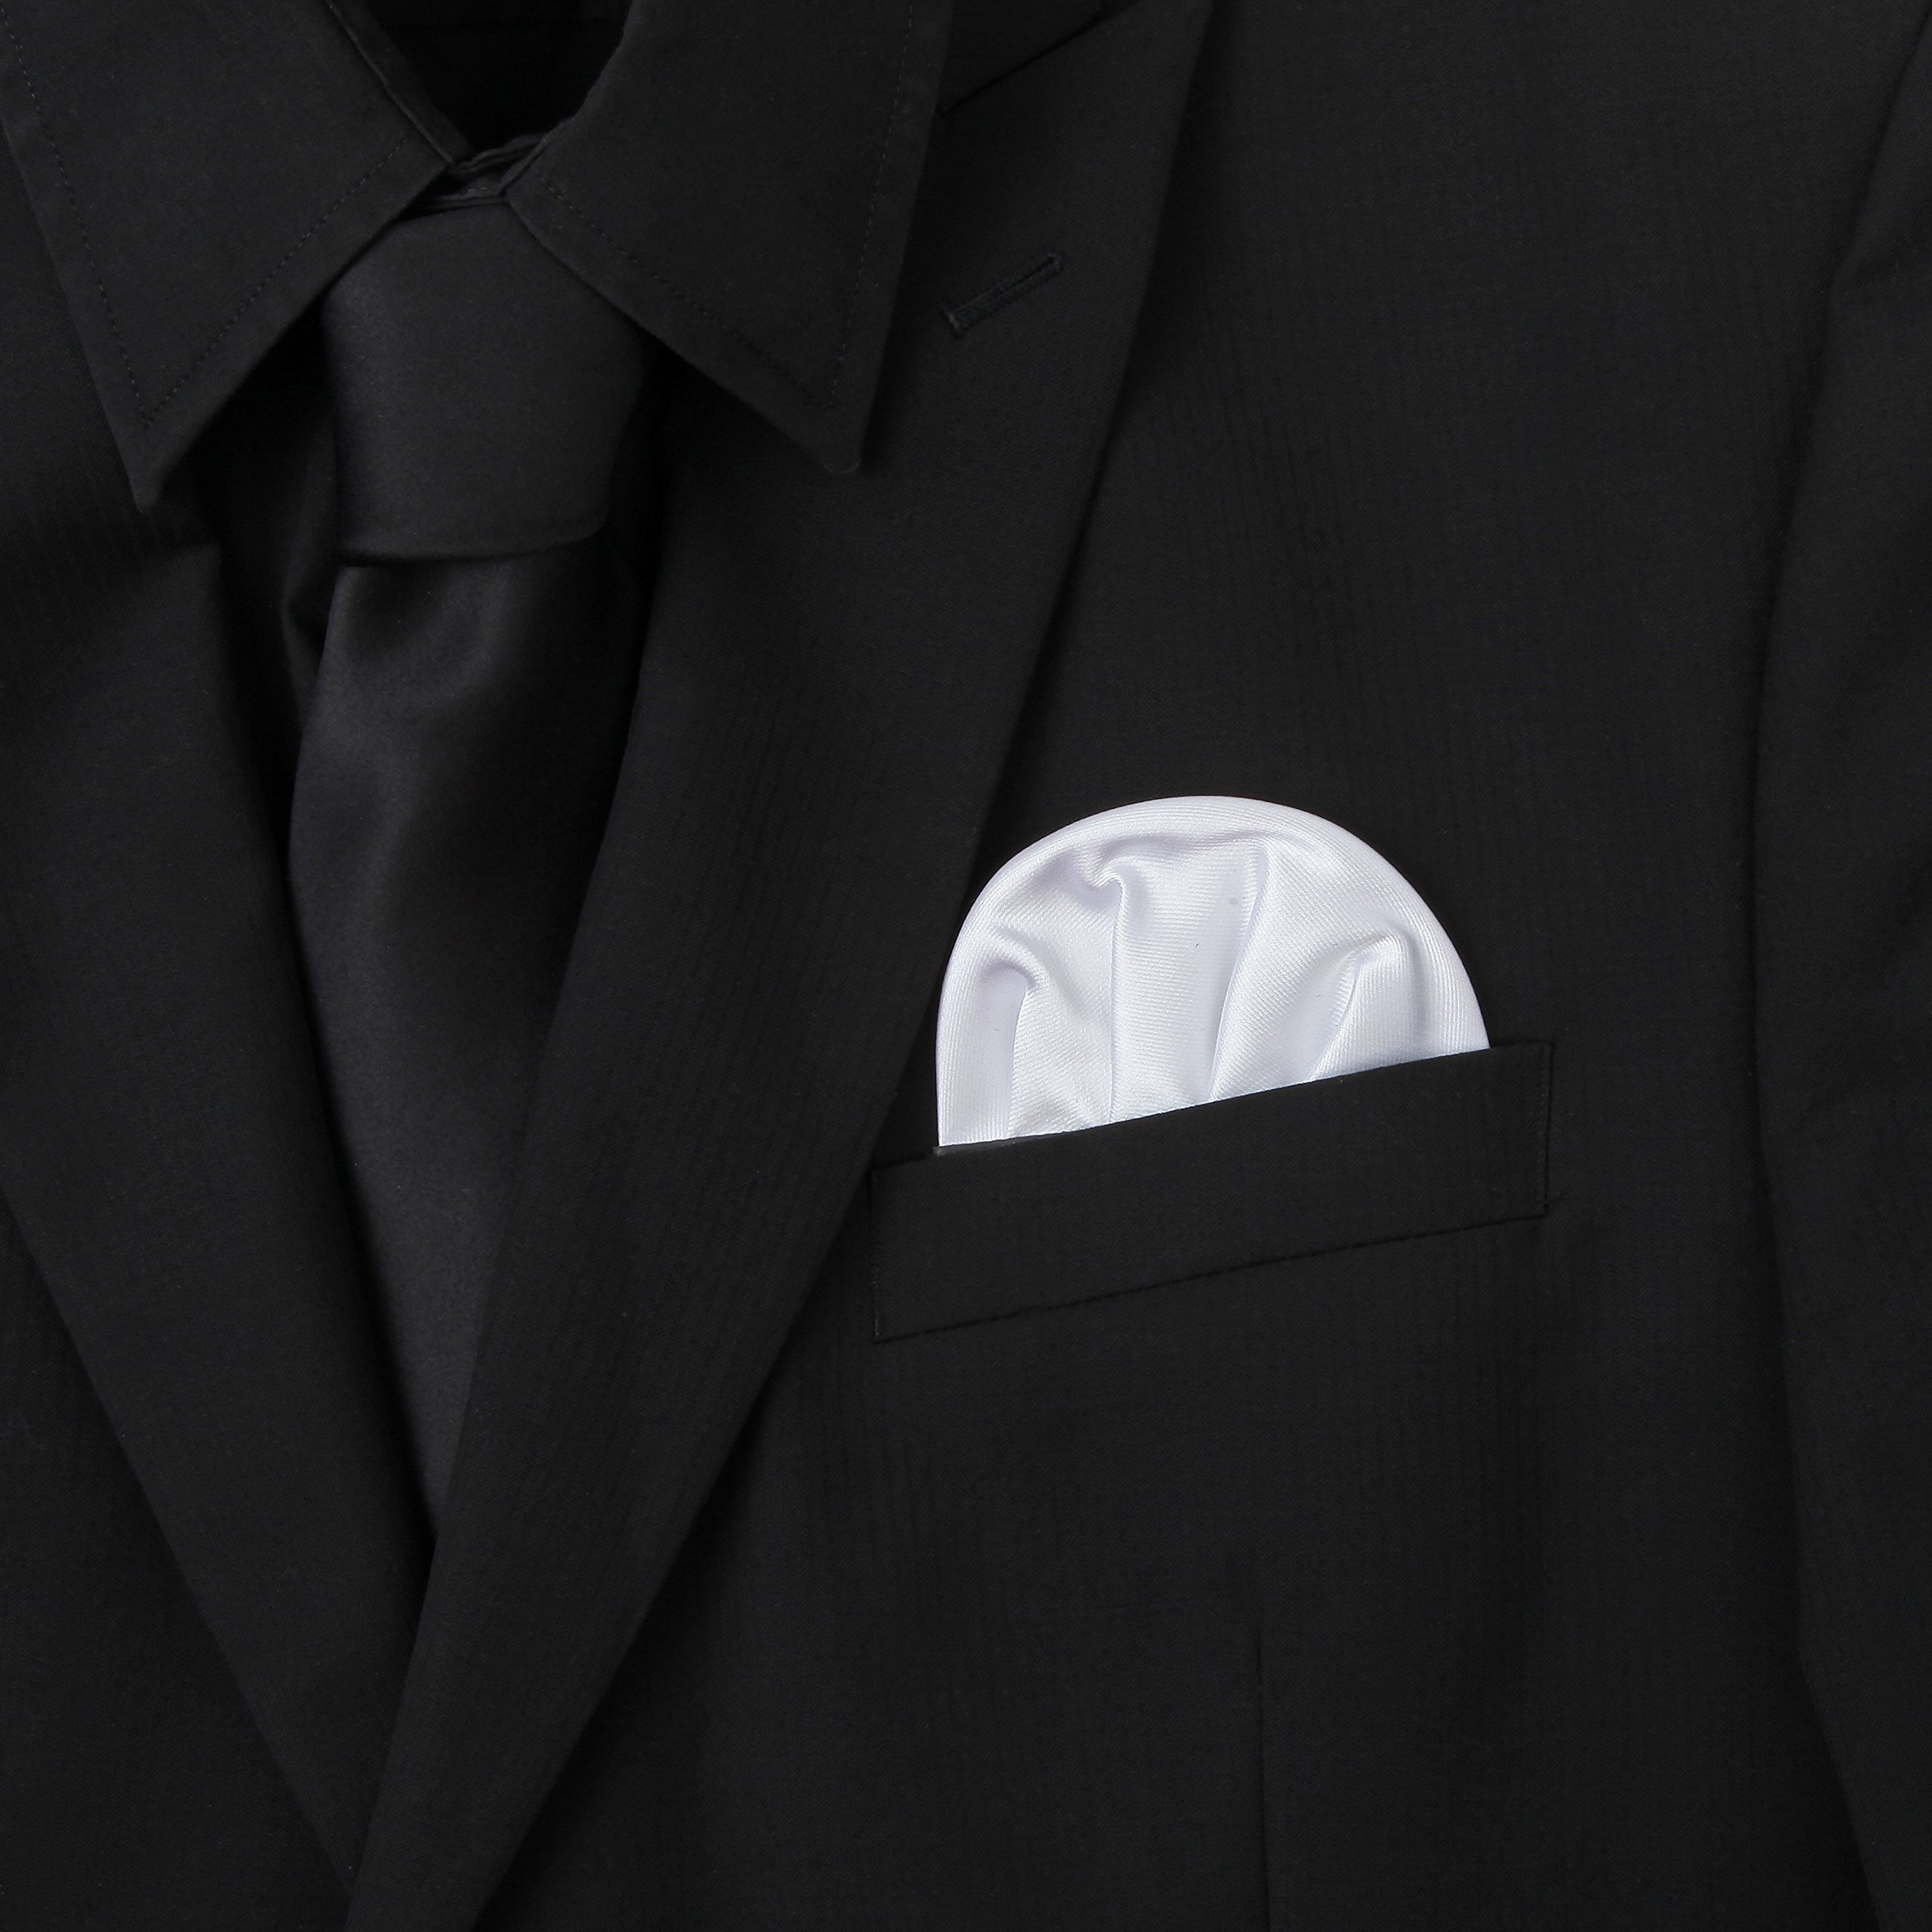 3-Pk White Pocket Square Set Pre Folded, Pesko, Crown and Puff Folds by Puentes Denver (Image #2)